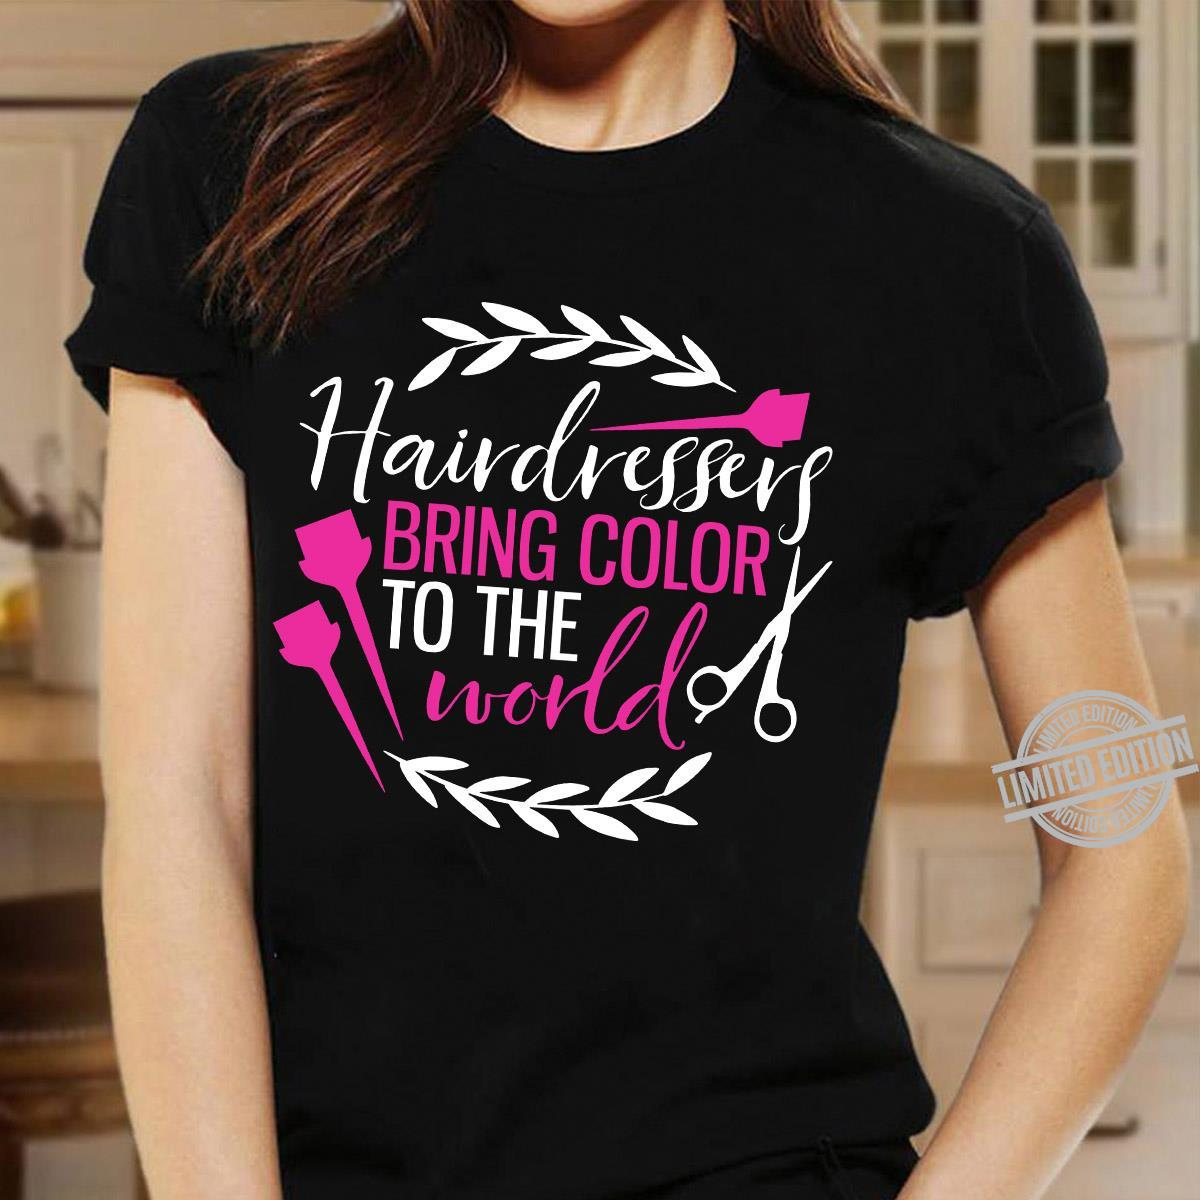 Hairdressers Bring Color To The World Shirt